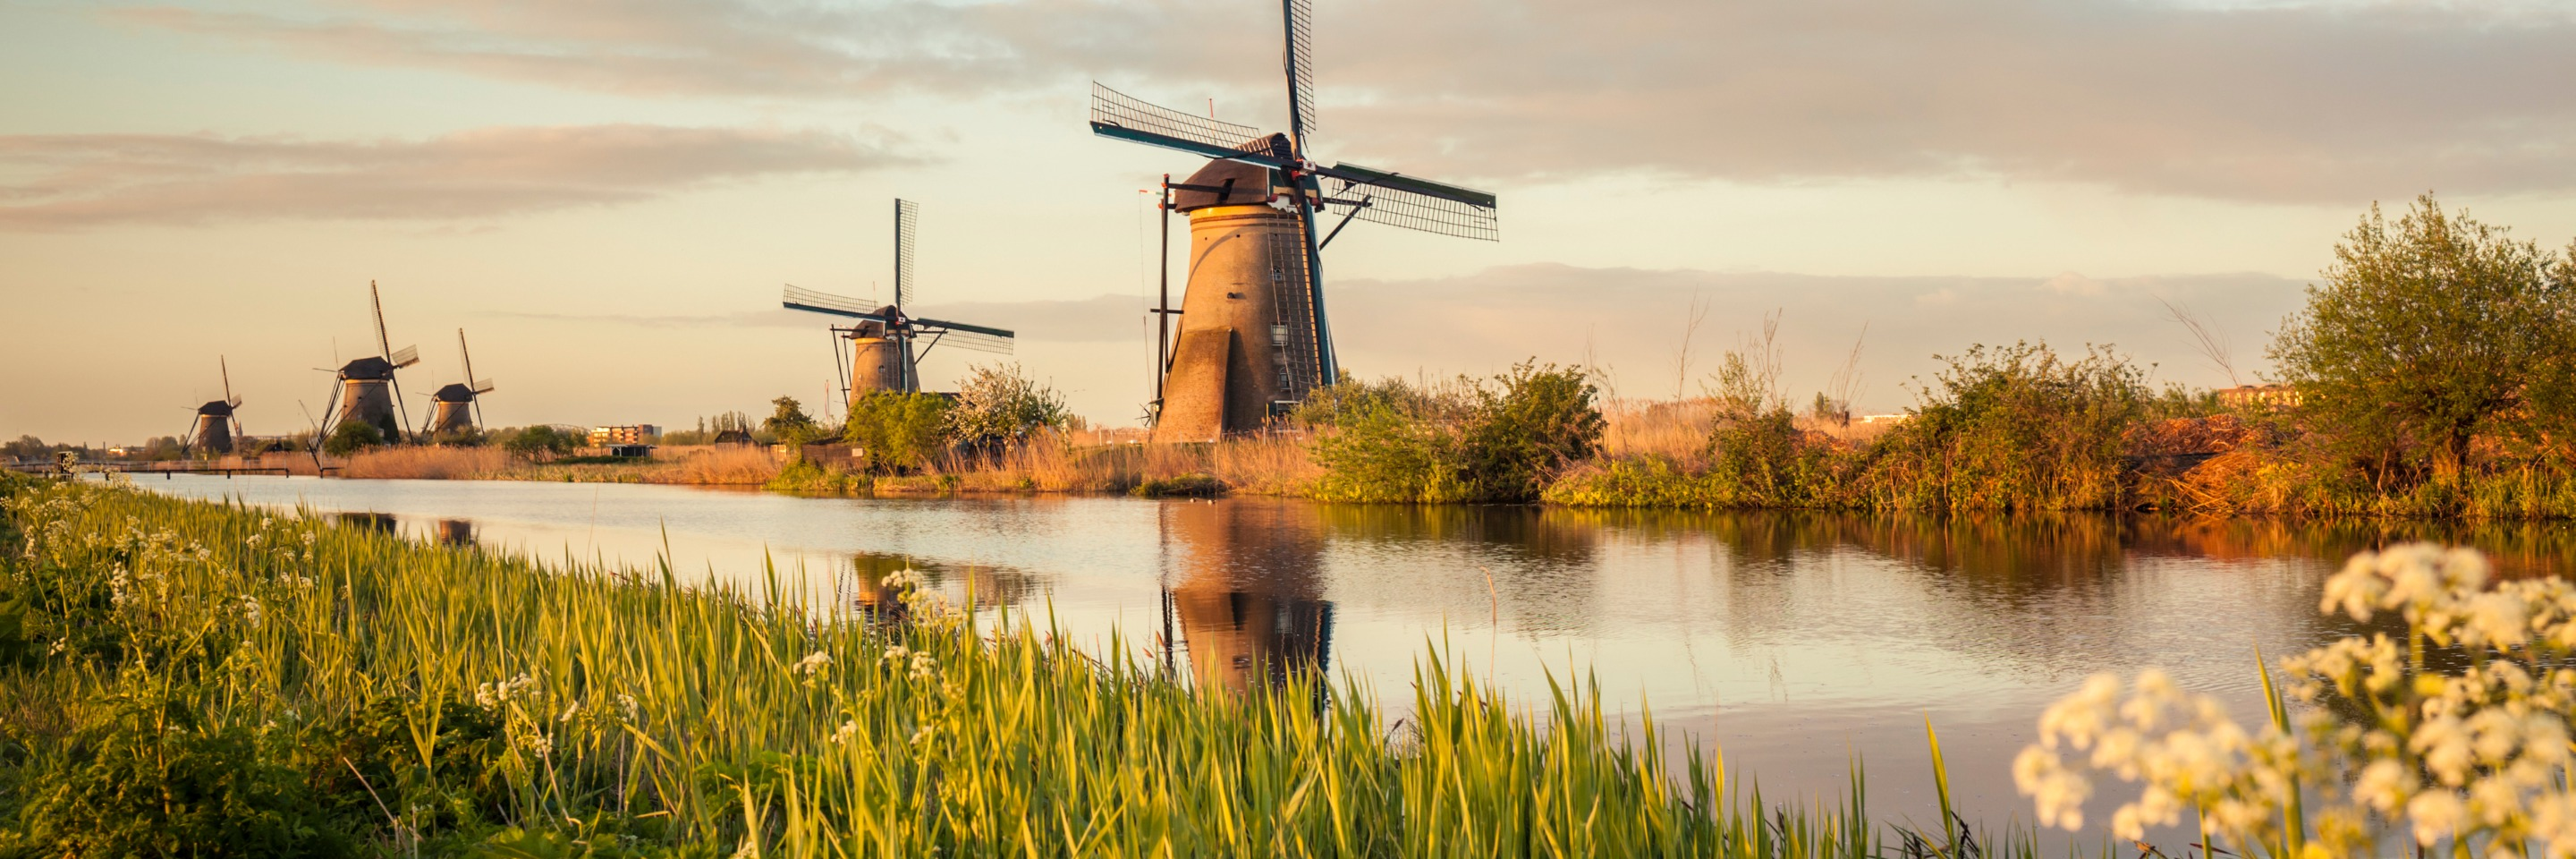 Bites, Brews, Views & Canals   of Belgium & Holland with 1 Night in Amsterdam